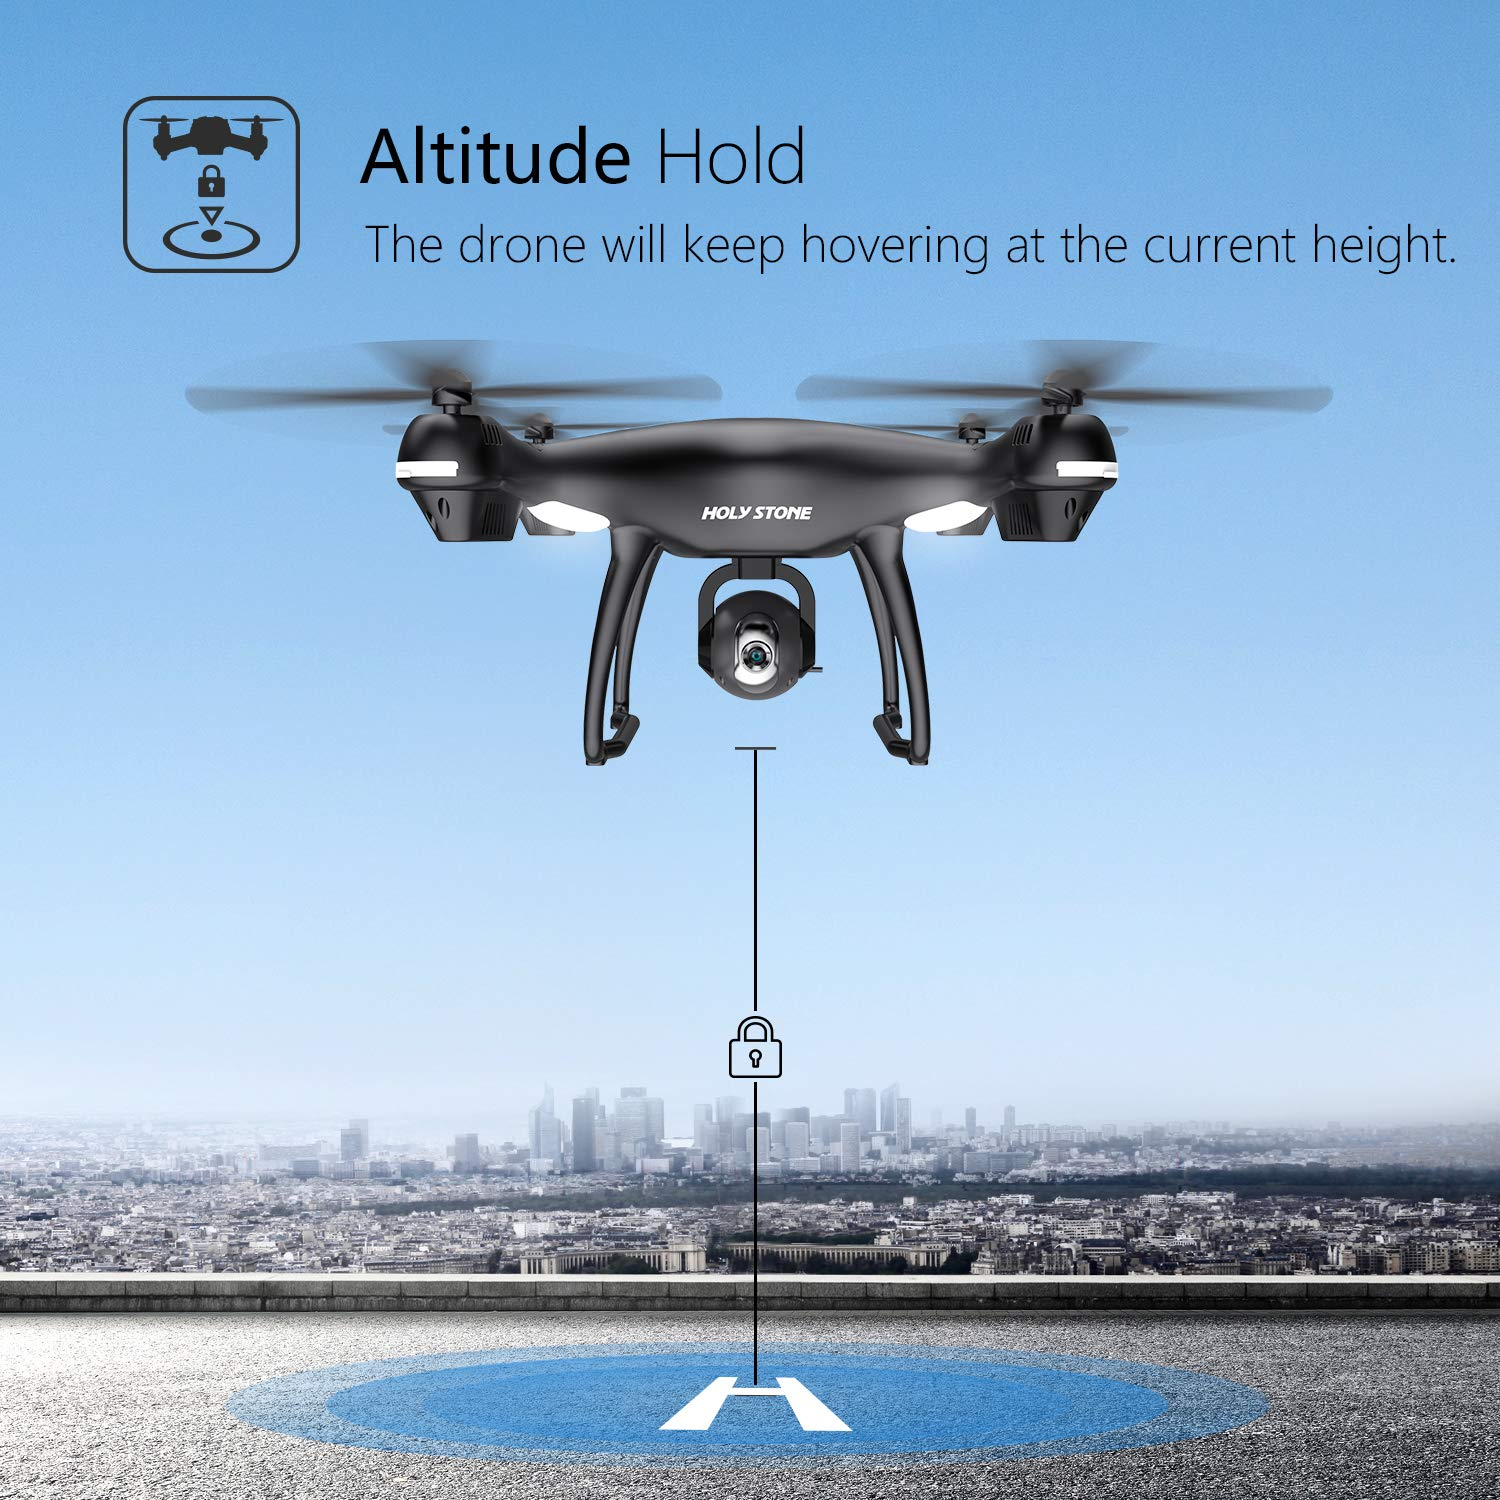 Follow Me Adjustable Wide-Angle HD 720P WiFi Camera Altitude Hold Holy Stone GPS RC Drone with FPV Camera Live Video and Auto Return Home for Adults Beginners Quadcopter with 15 Mins Flight Time